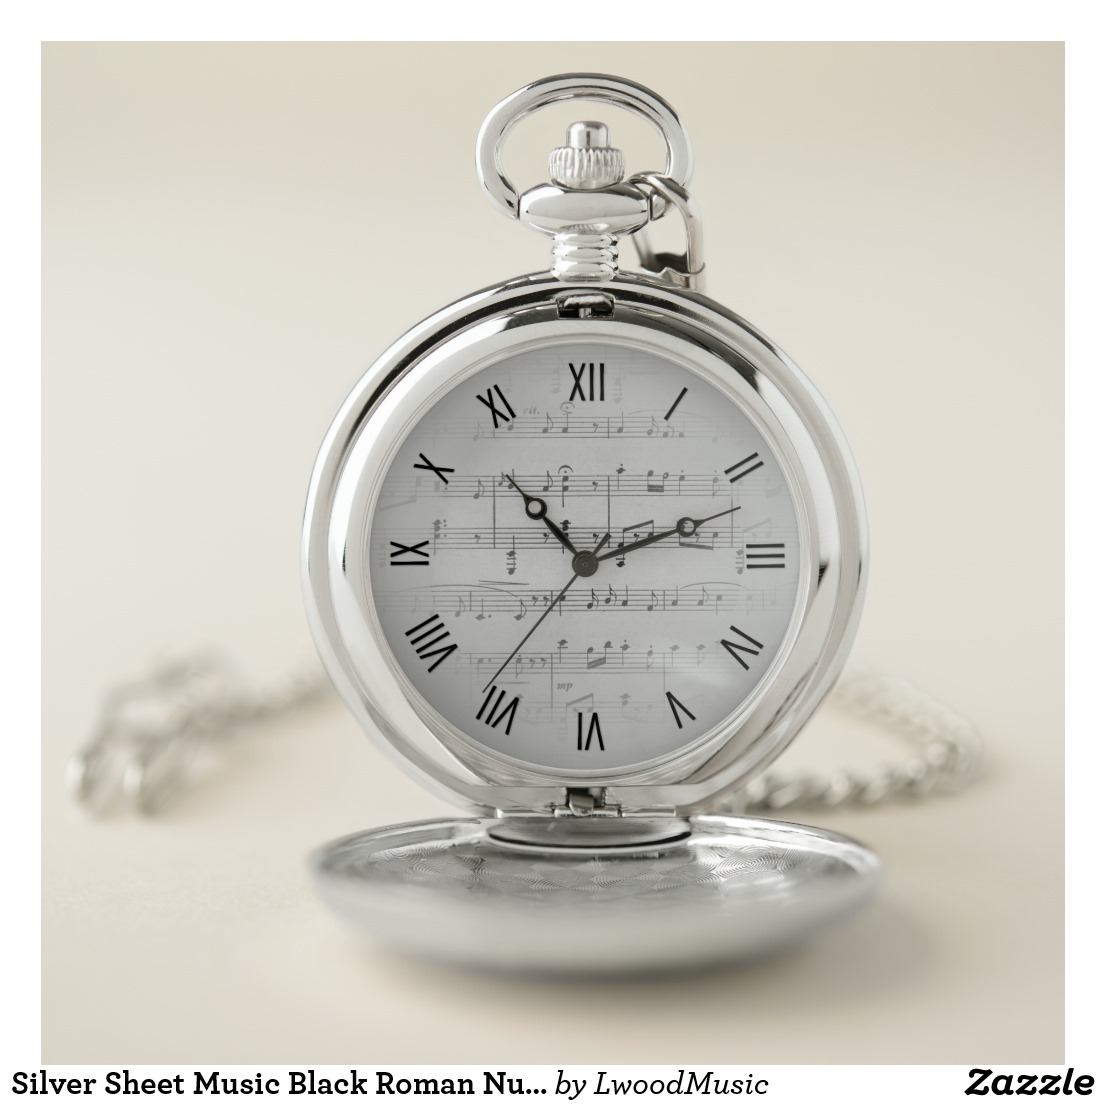 Silver Sheet Music Black Roman Numerals Pocket Watch